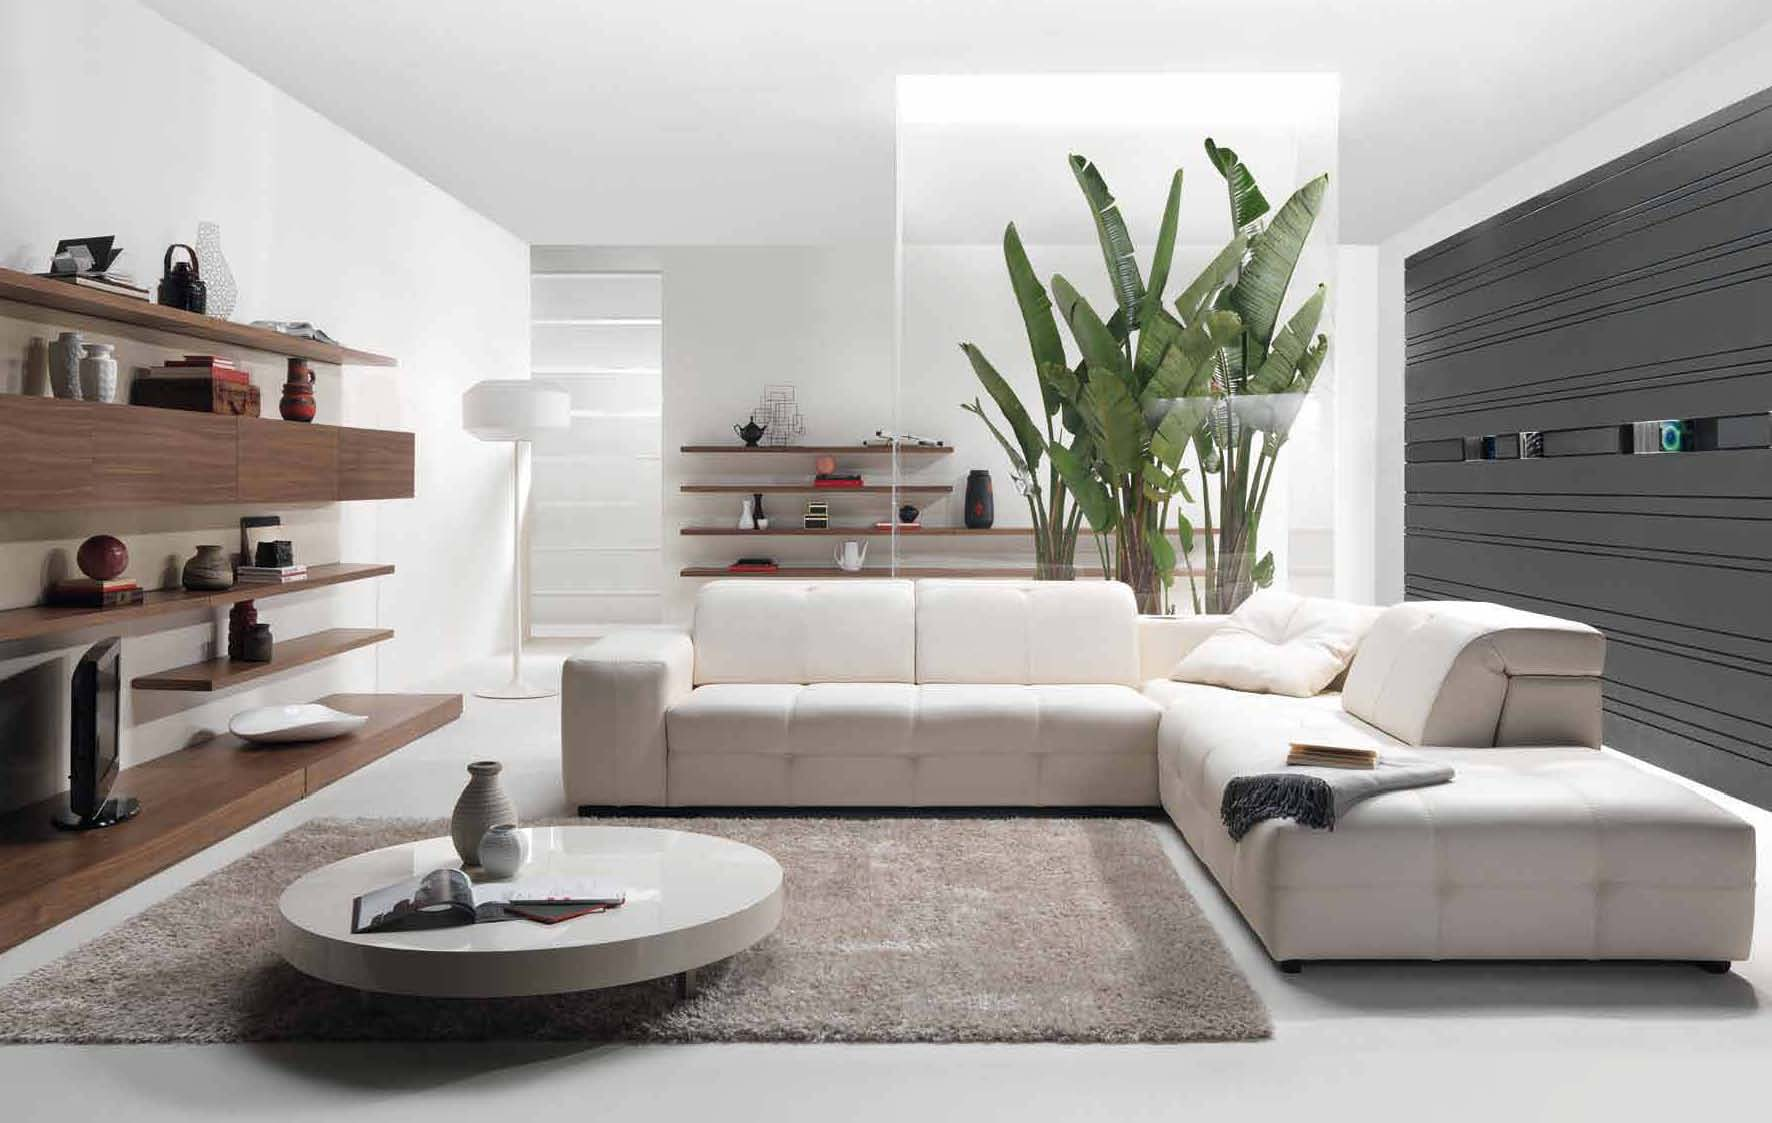 Superb Modern Minimalist Style Living Room Decorating With Shaggy